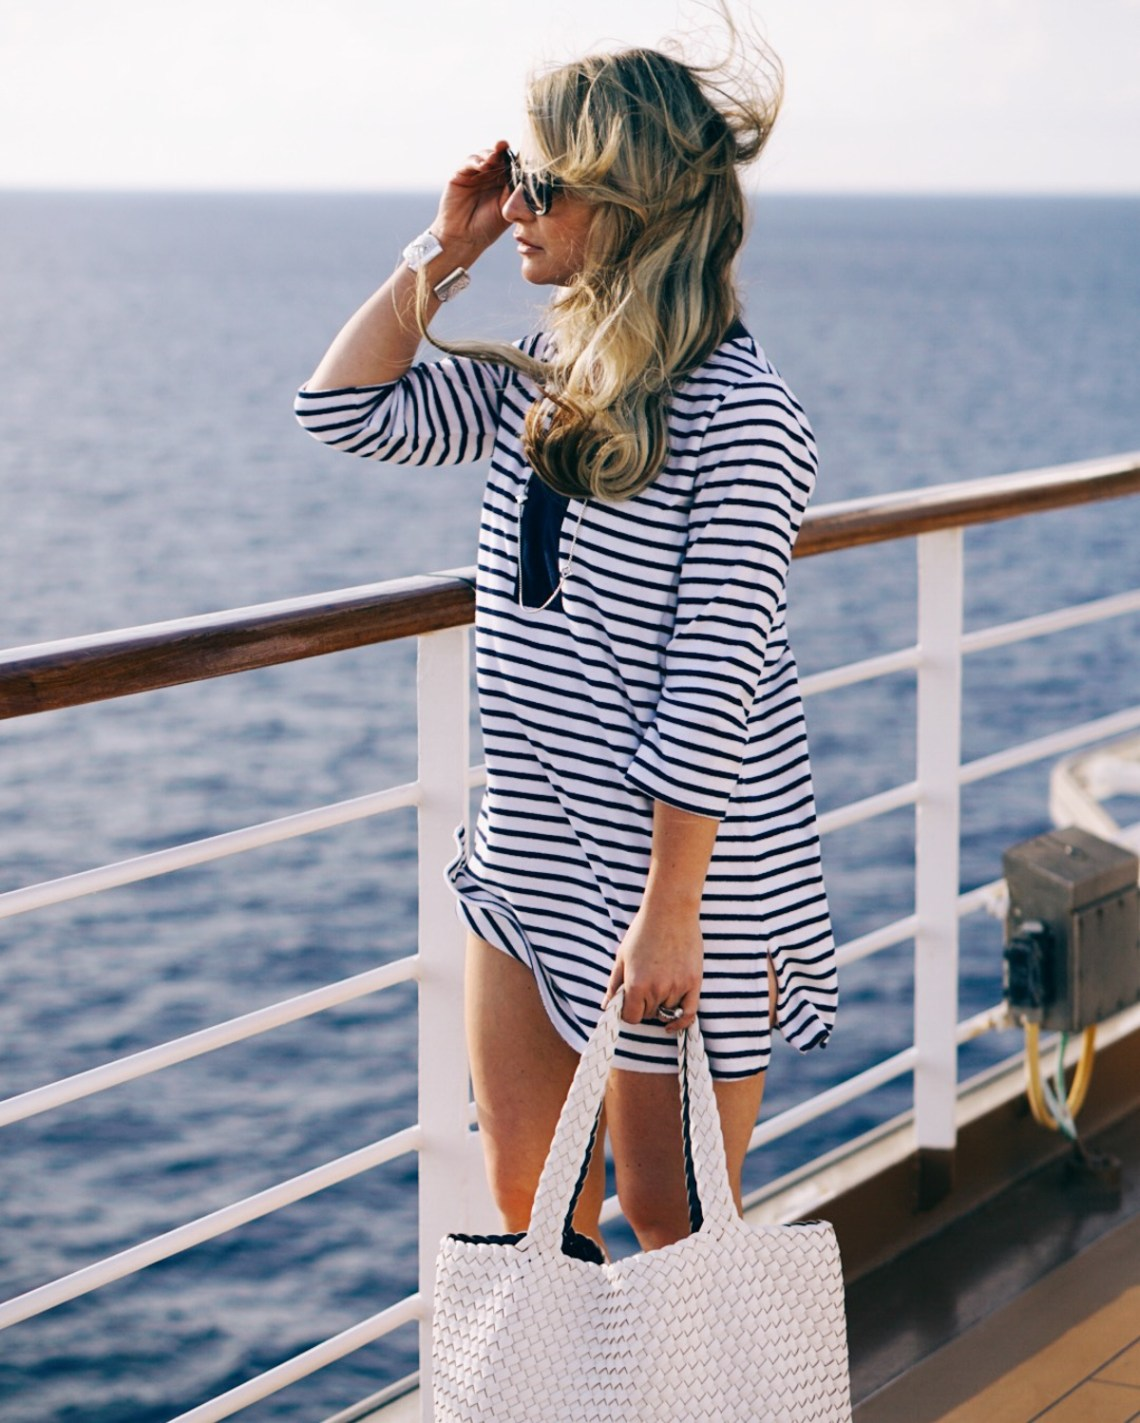 Resort Wear- My Lands End Looks from Our Holland America Cruise Vacation with Oprah Magazine - via travel blogger Misty Nelson, frostedblog